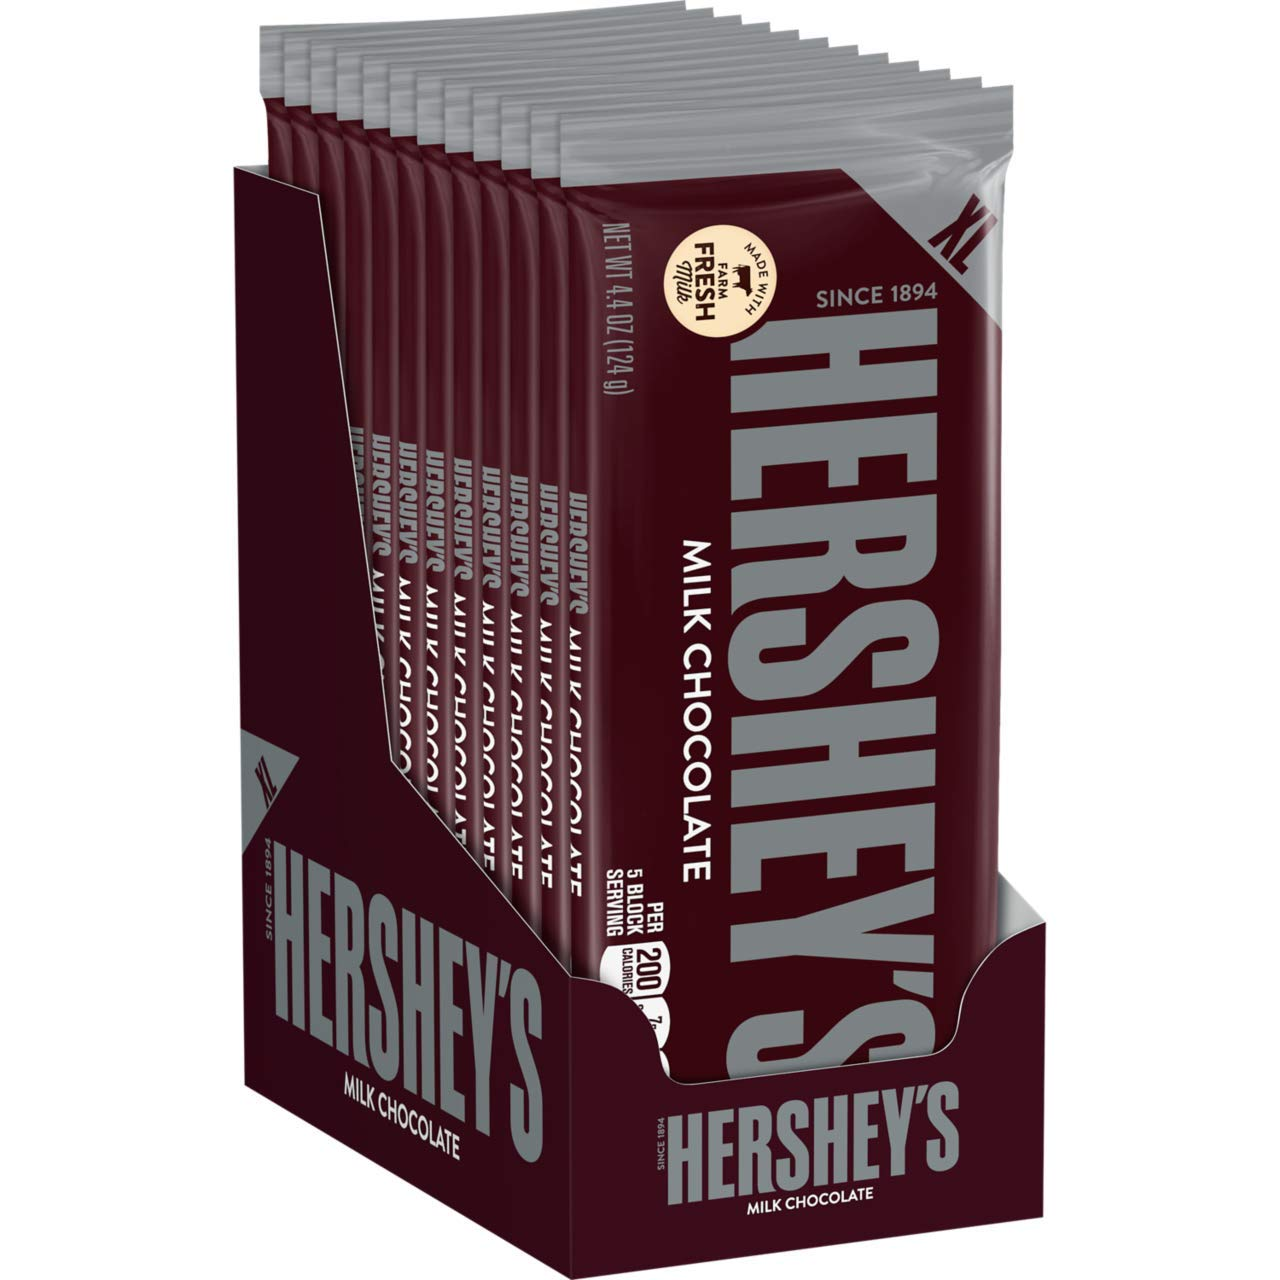 HERSHEY'S Chocolate Candy Bars, Extra Large, 4.4 Ounce Bar (Pack of 12) by HERSHEY'S